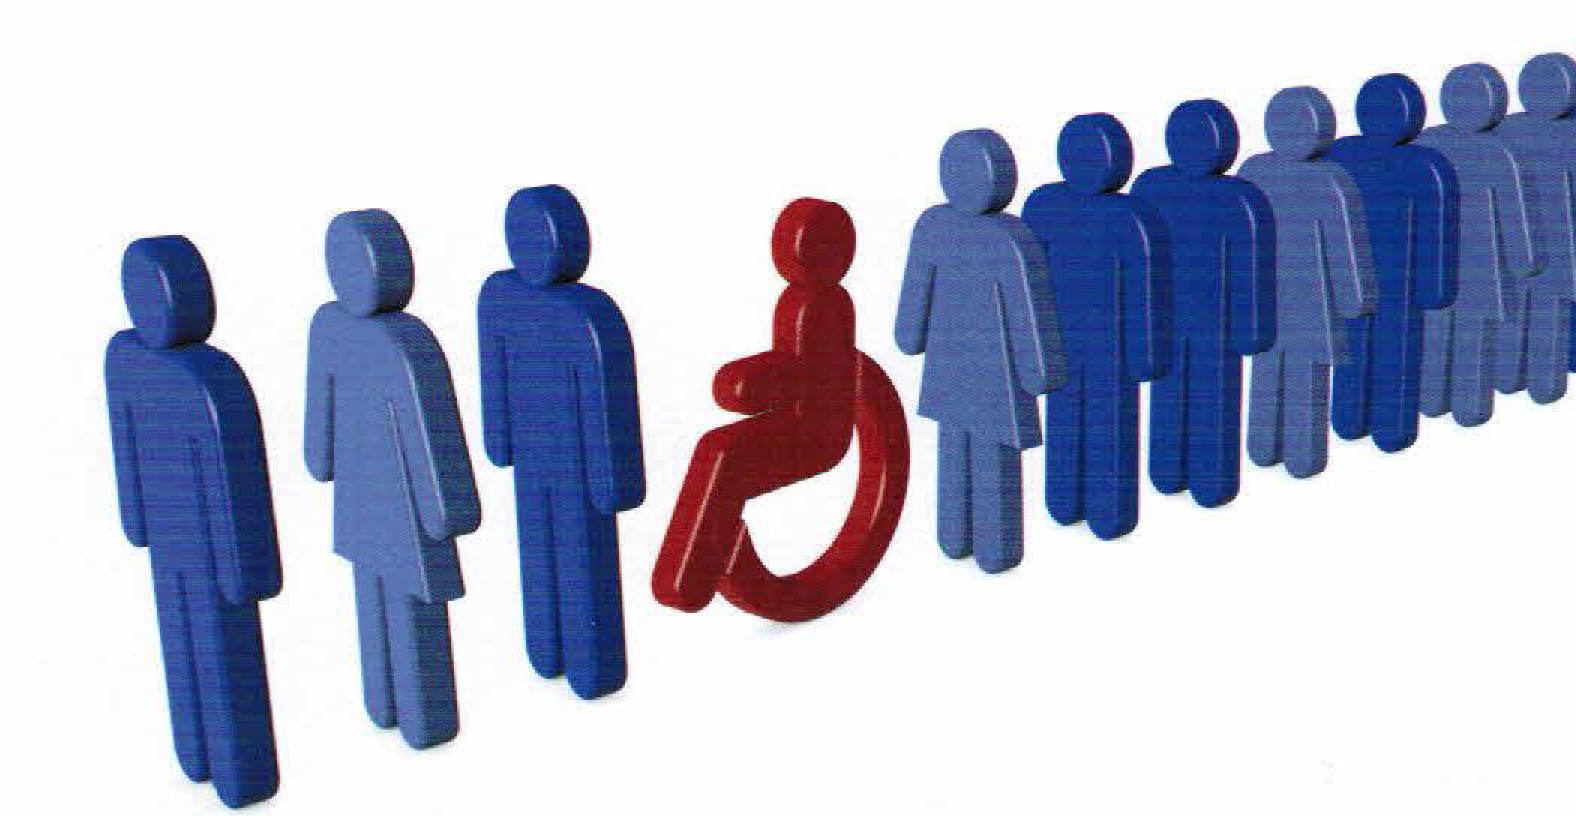 an introduction to the americans with disabilities act Introduction brown university brown will comply with all federal and state laws and regulations, including the americans with disabilities act of 1990 (ada).